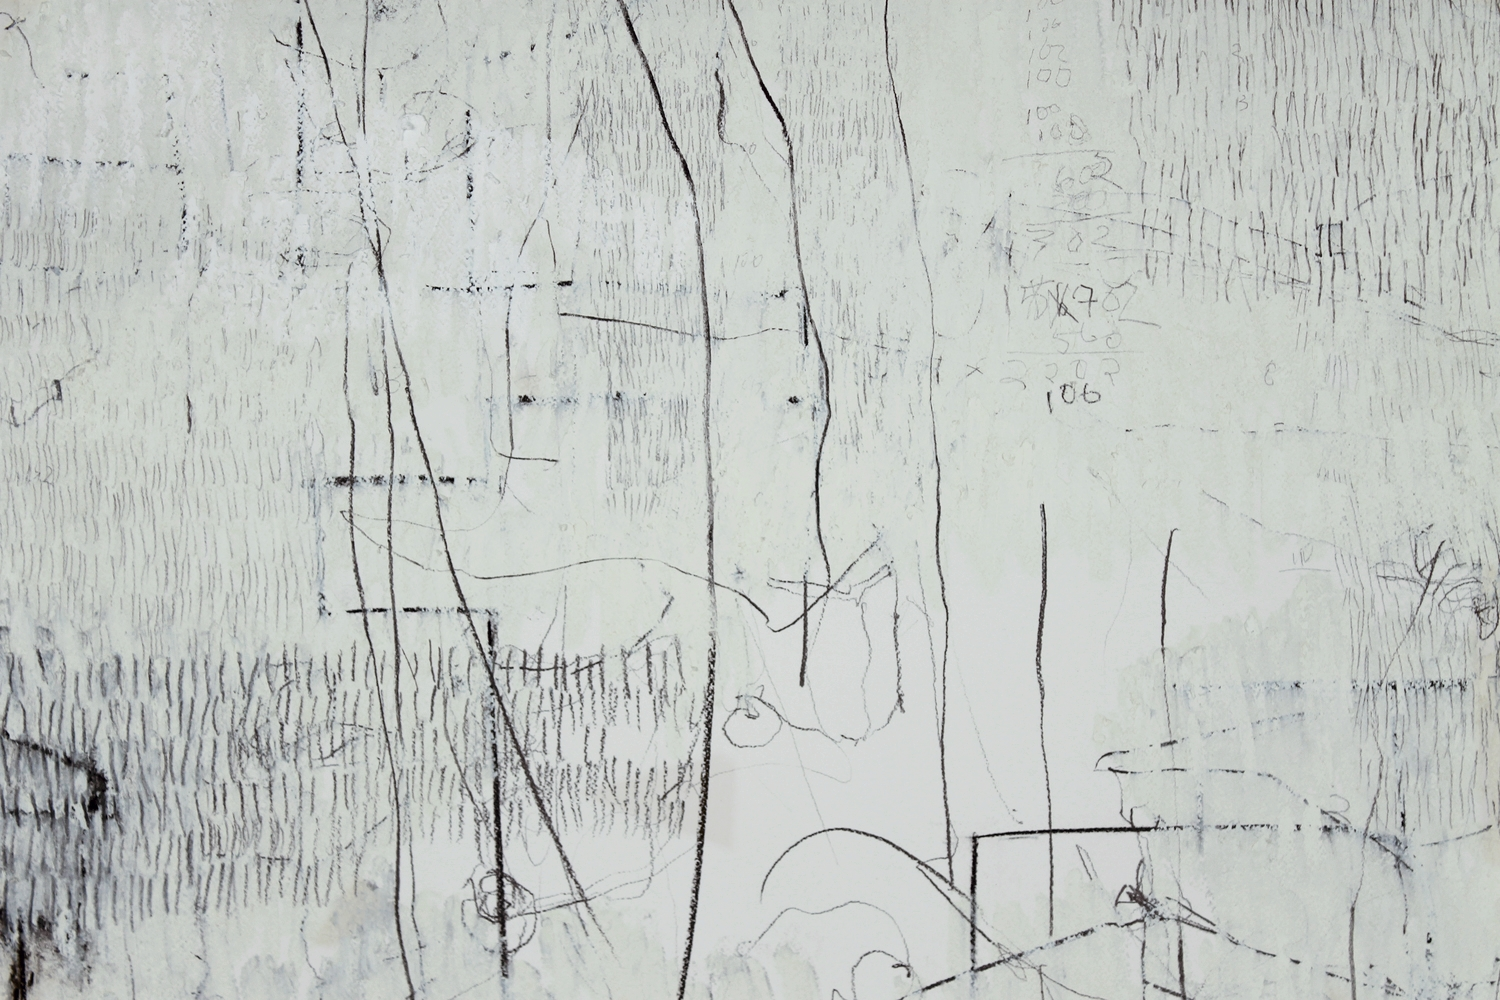 """7,930 Steps to Tania (McDowell Road) (detail), Graphite, charcoal, oil on paper,14.2"""" x 17.5"""", 2010"""